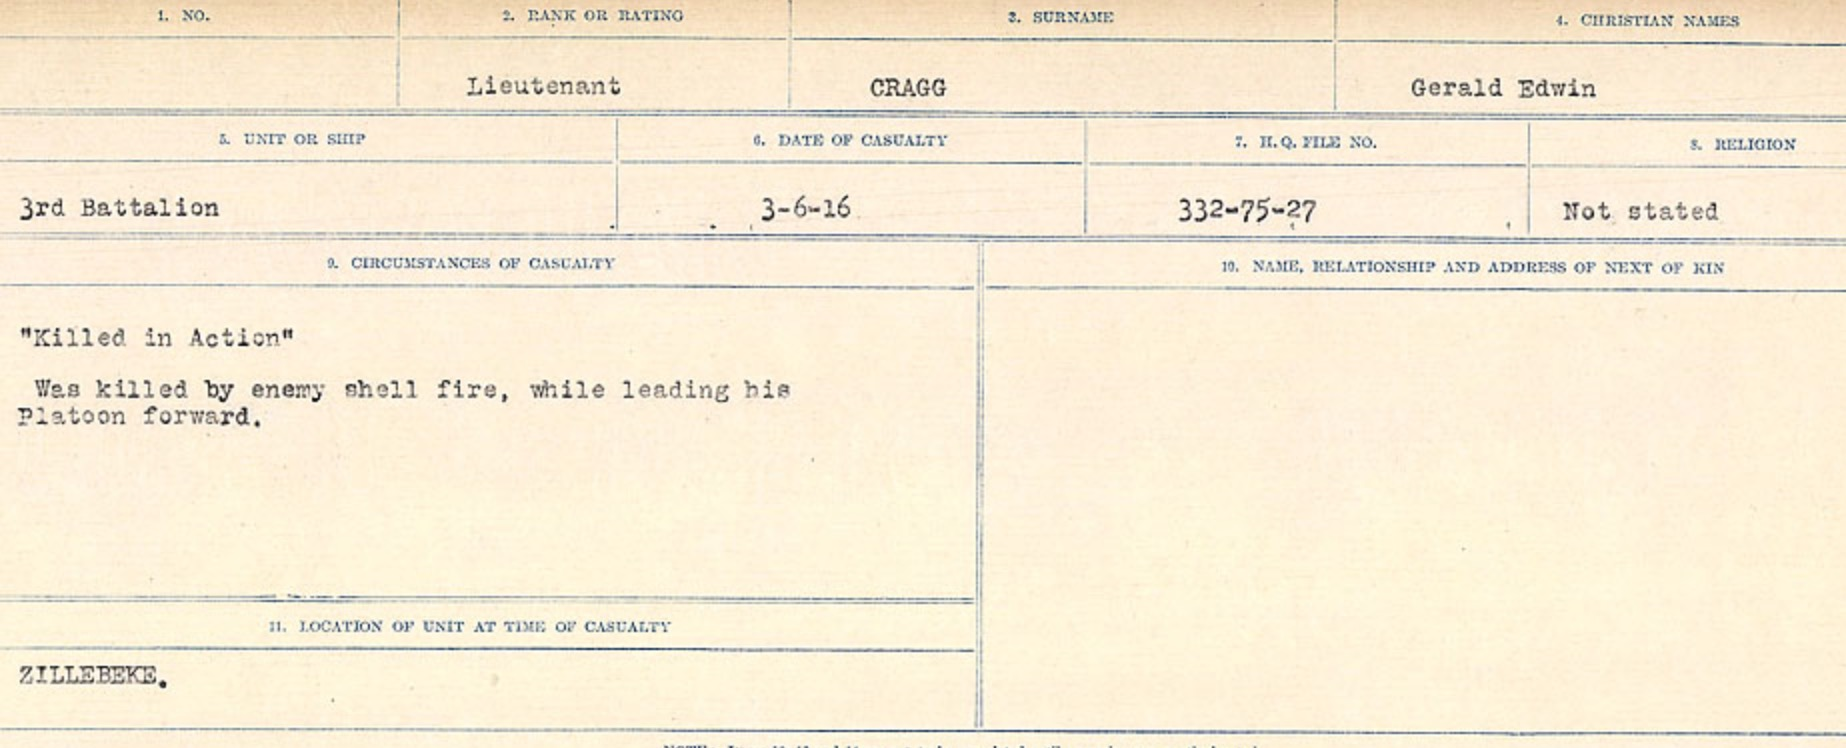 Circumstances of Death Registers – Source: Library and Archives Canada. CIRCUMSTANCES OF DEATH REGISTERS, FIRST WORLD WAR Surnames: CRABB TO CROSSLAND Microform Sequence 24; Volume Number 31829_B016733. Reference RG150, 1992-93/314, 168. Page 33  of 788.